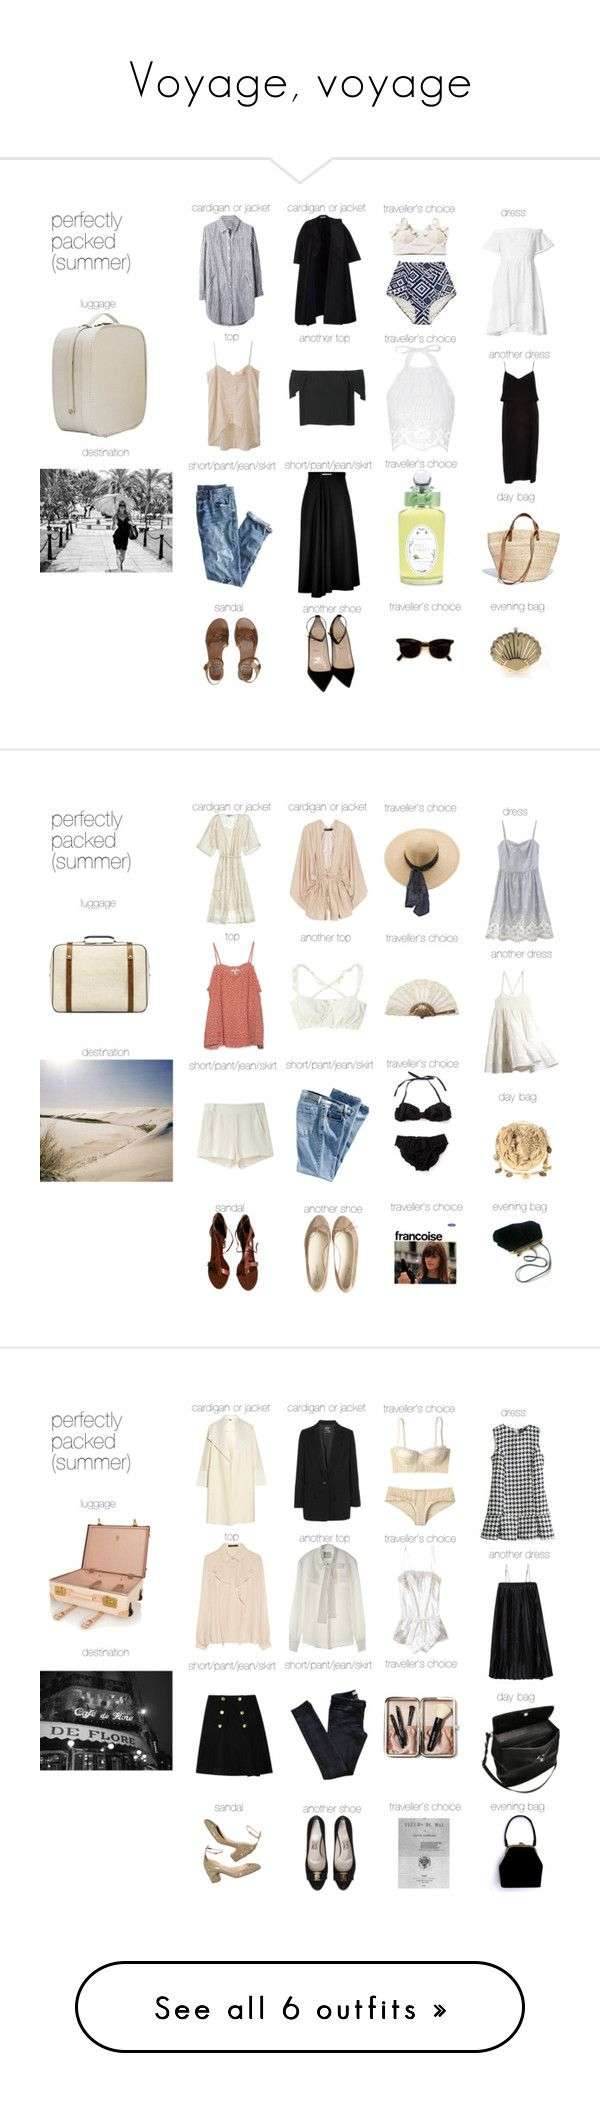 """""""Voyage, voyage"""" by yanghaizi ❤ liked on Polyvore featuring paris, memories, french and perfectlypacked"""